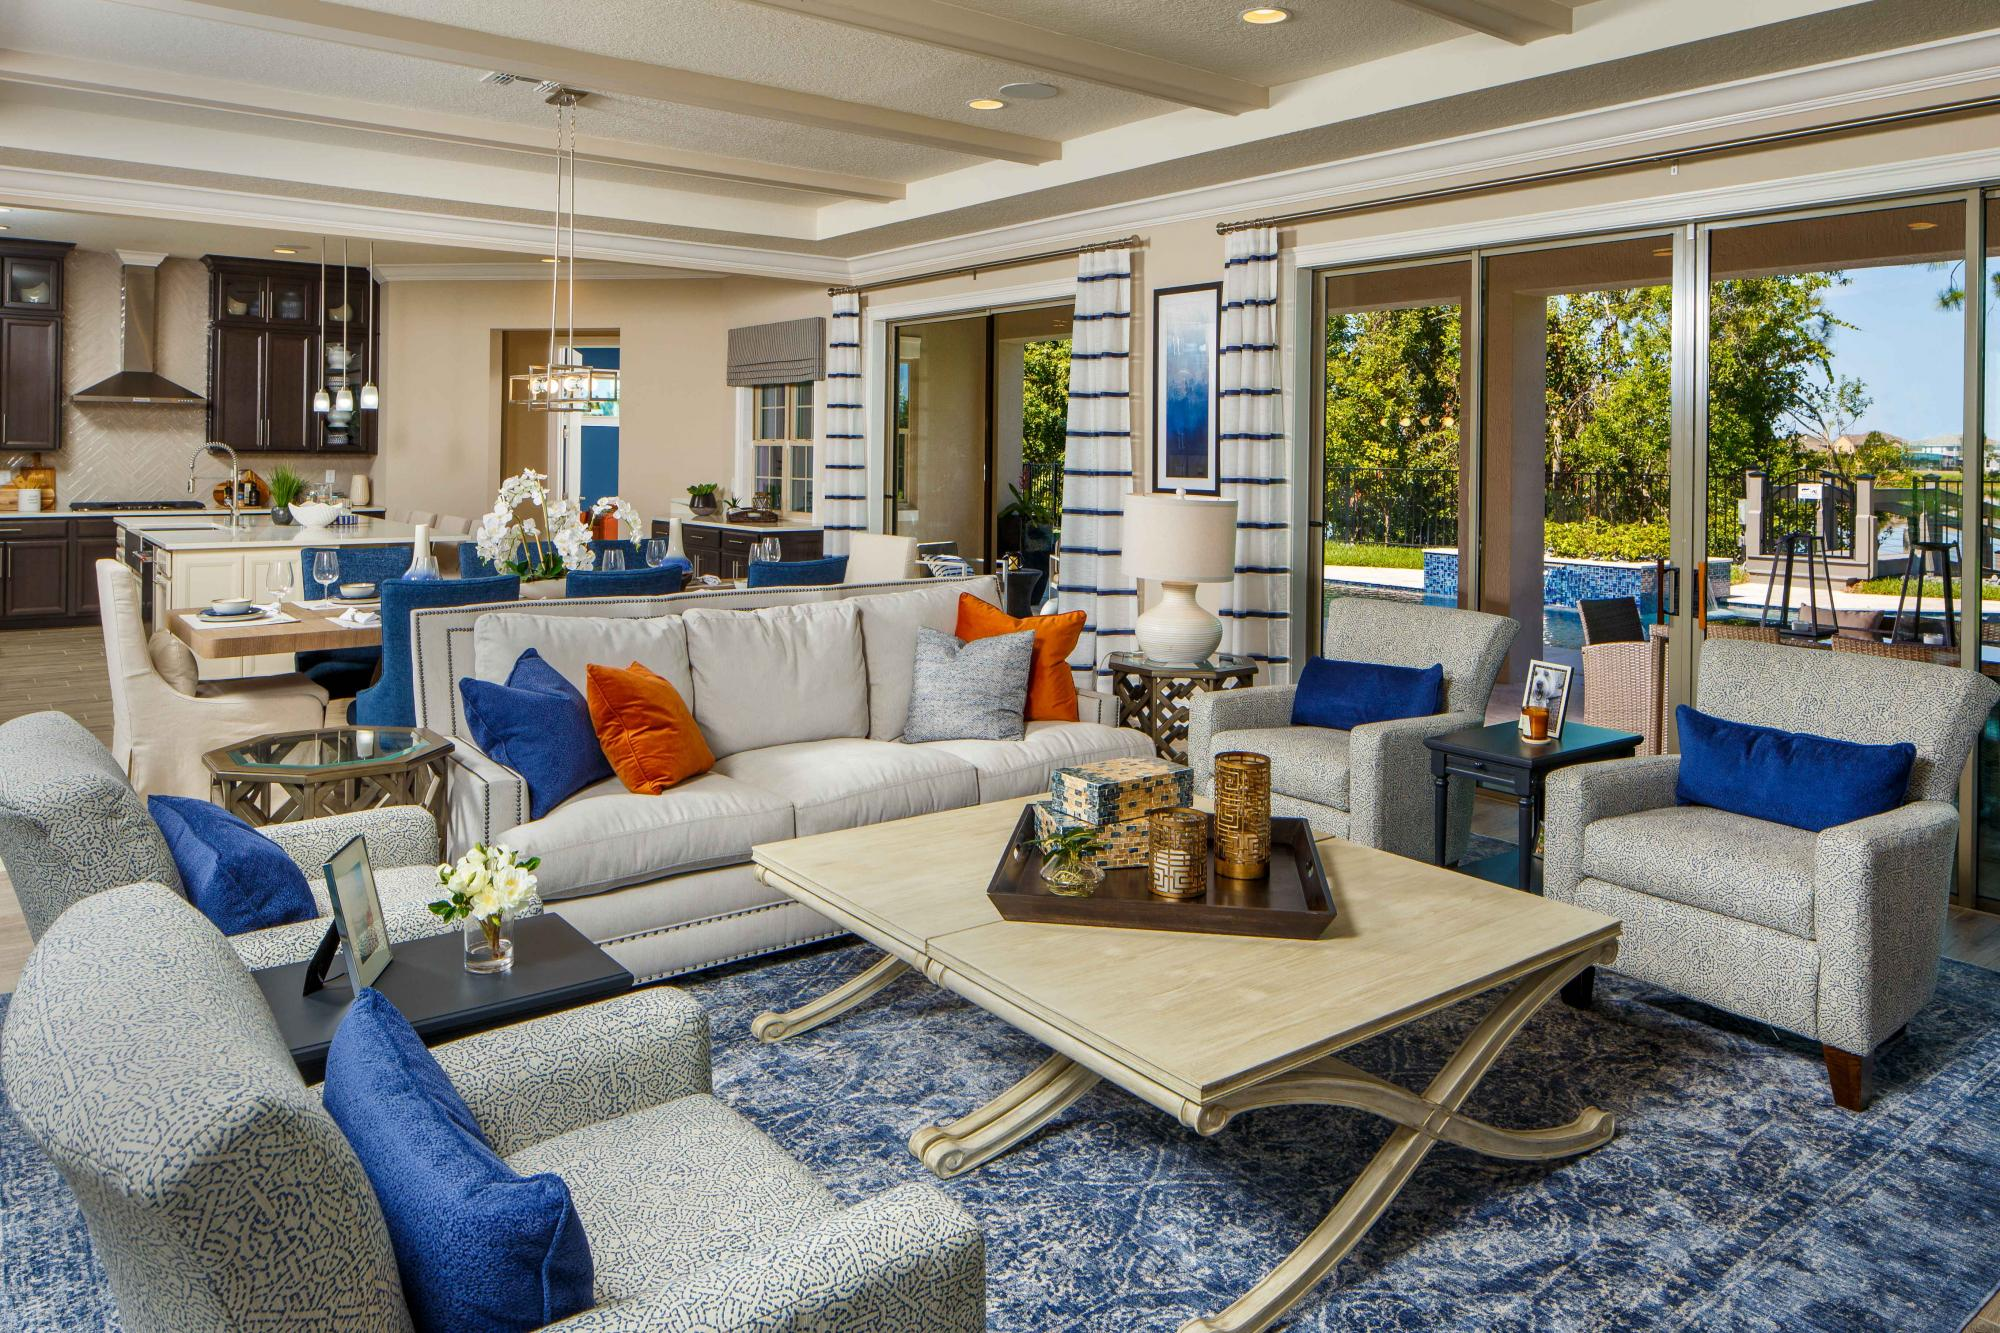 429018712136894_avalon_cove_living_room.